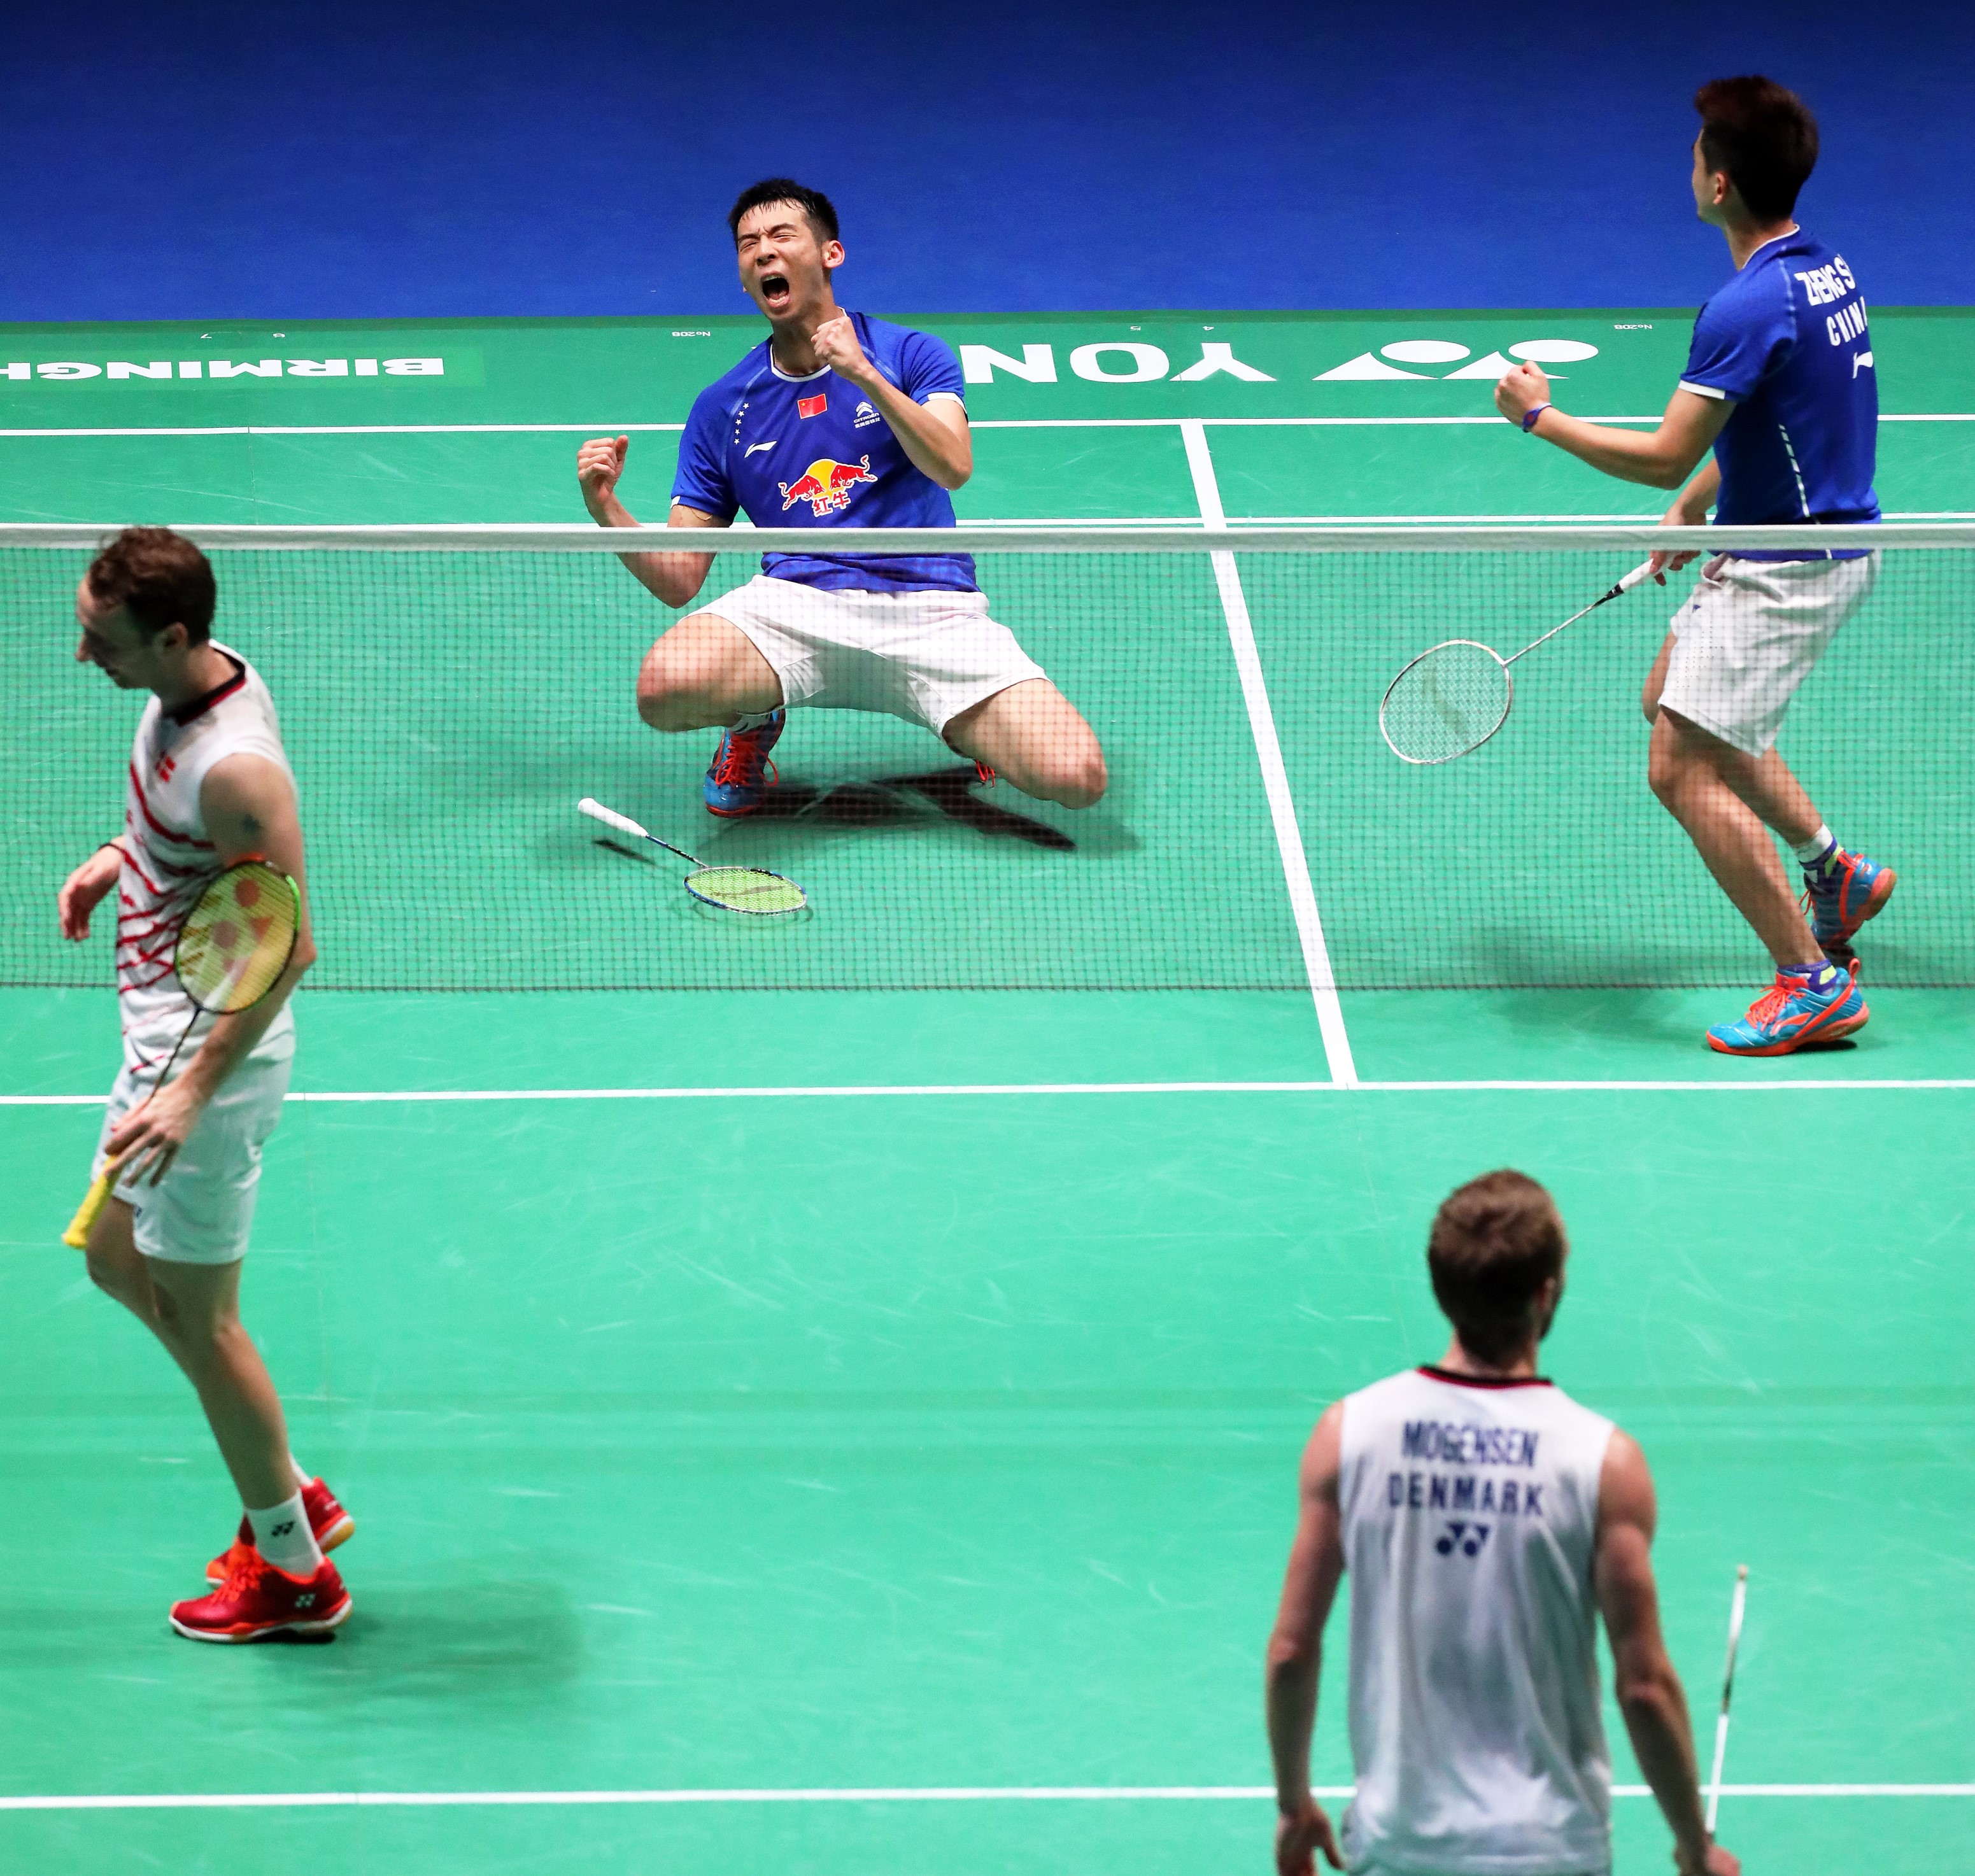 All England 2017 - Day 2 - Lu Kai & Zheng Siwei - China